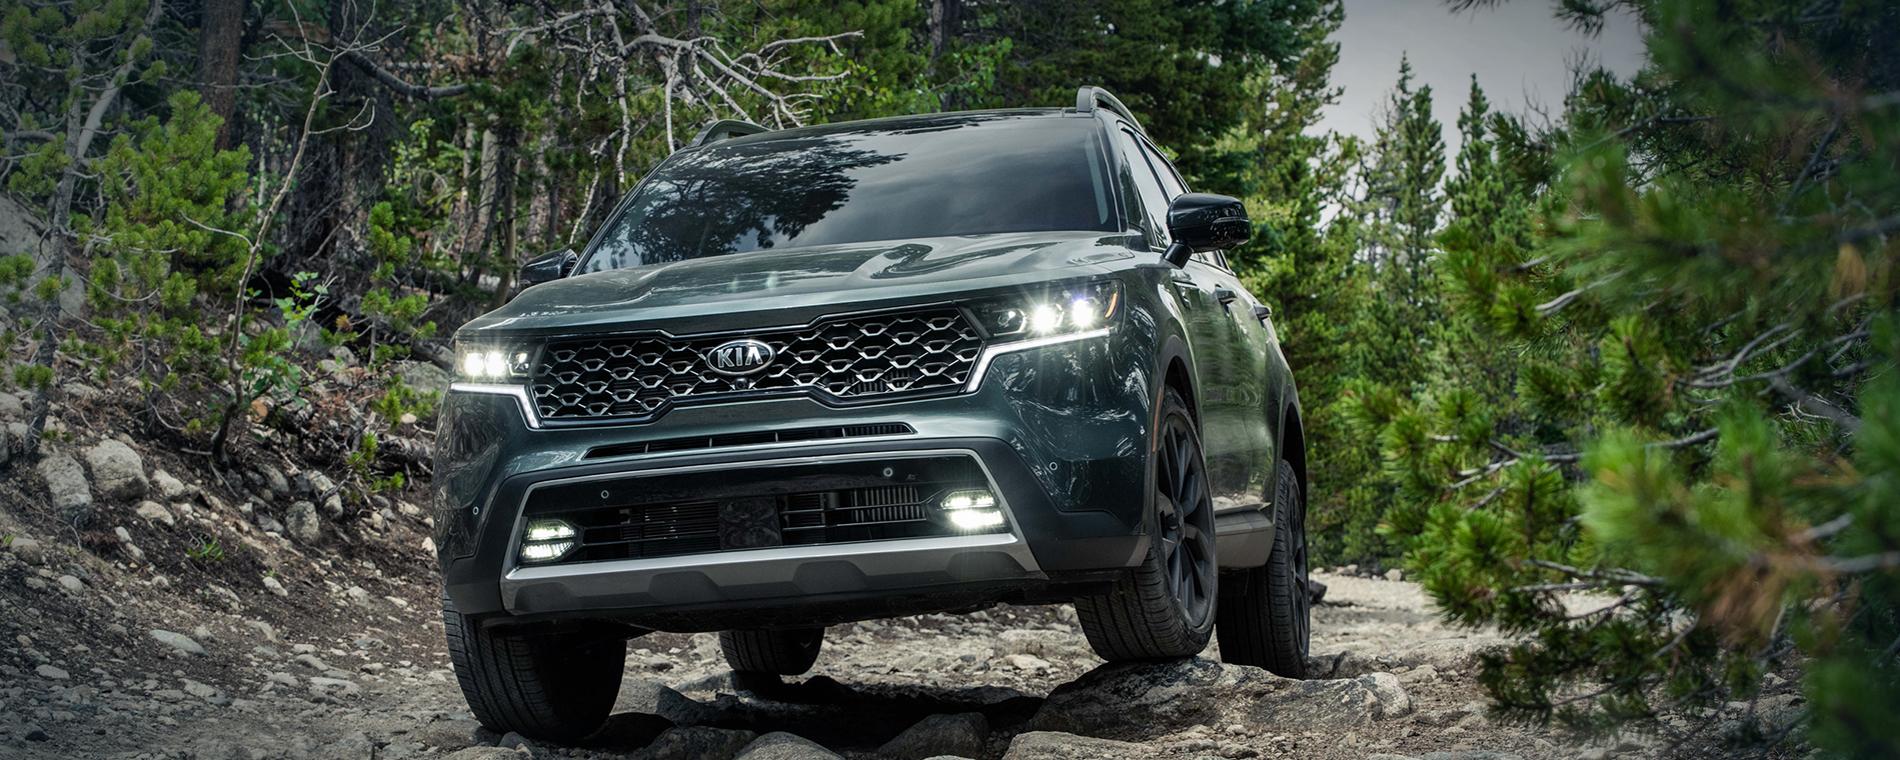 2019 Kia Sorento Interior: Kia Accessory Guide